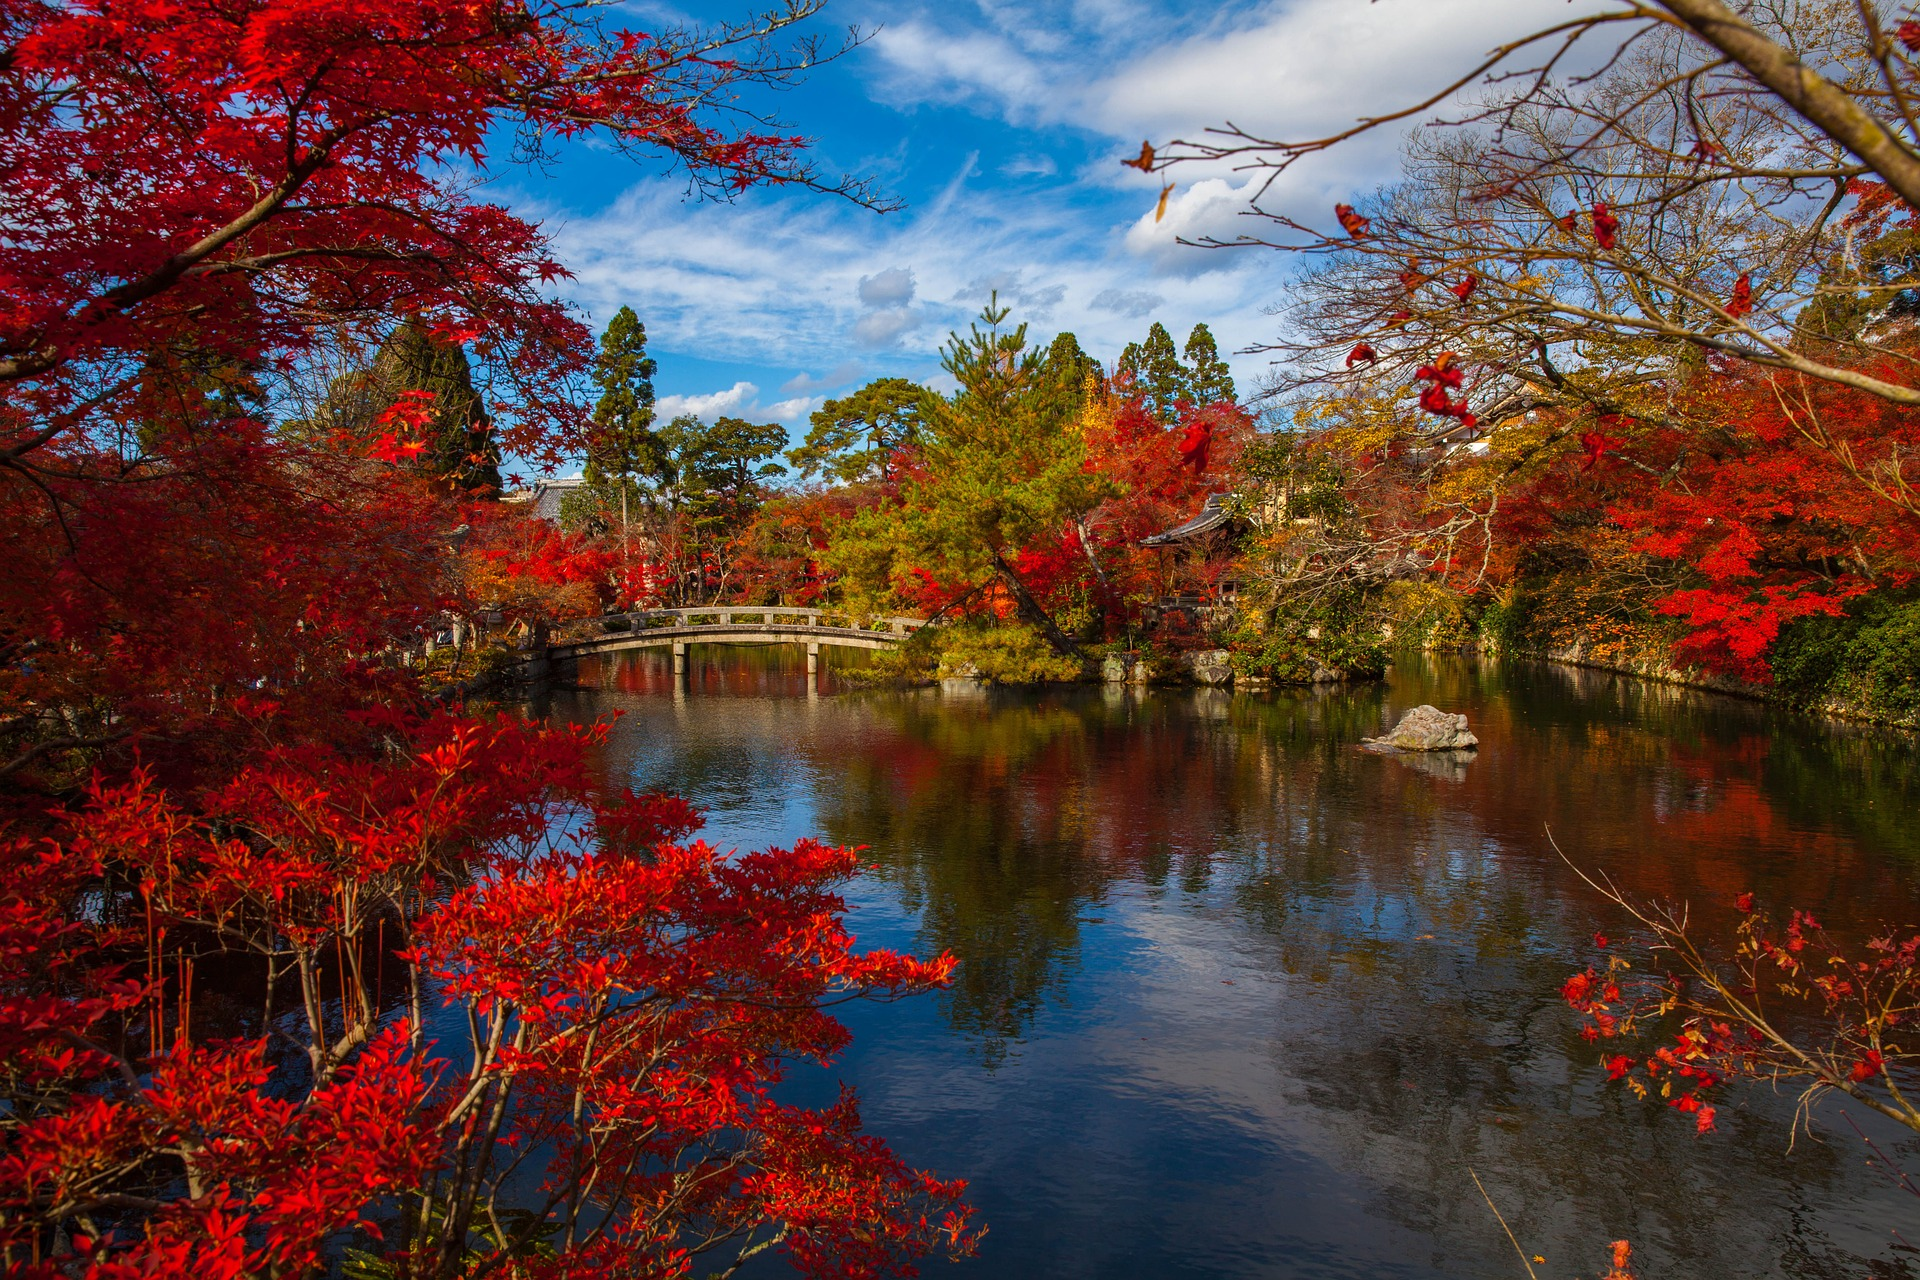 Beautiful autumn foliage at a Japanese garden in Kyoto, Japan